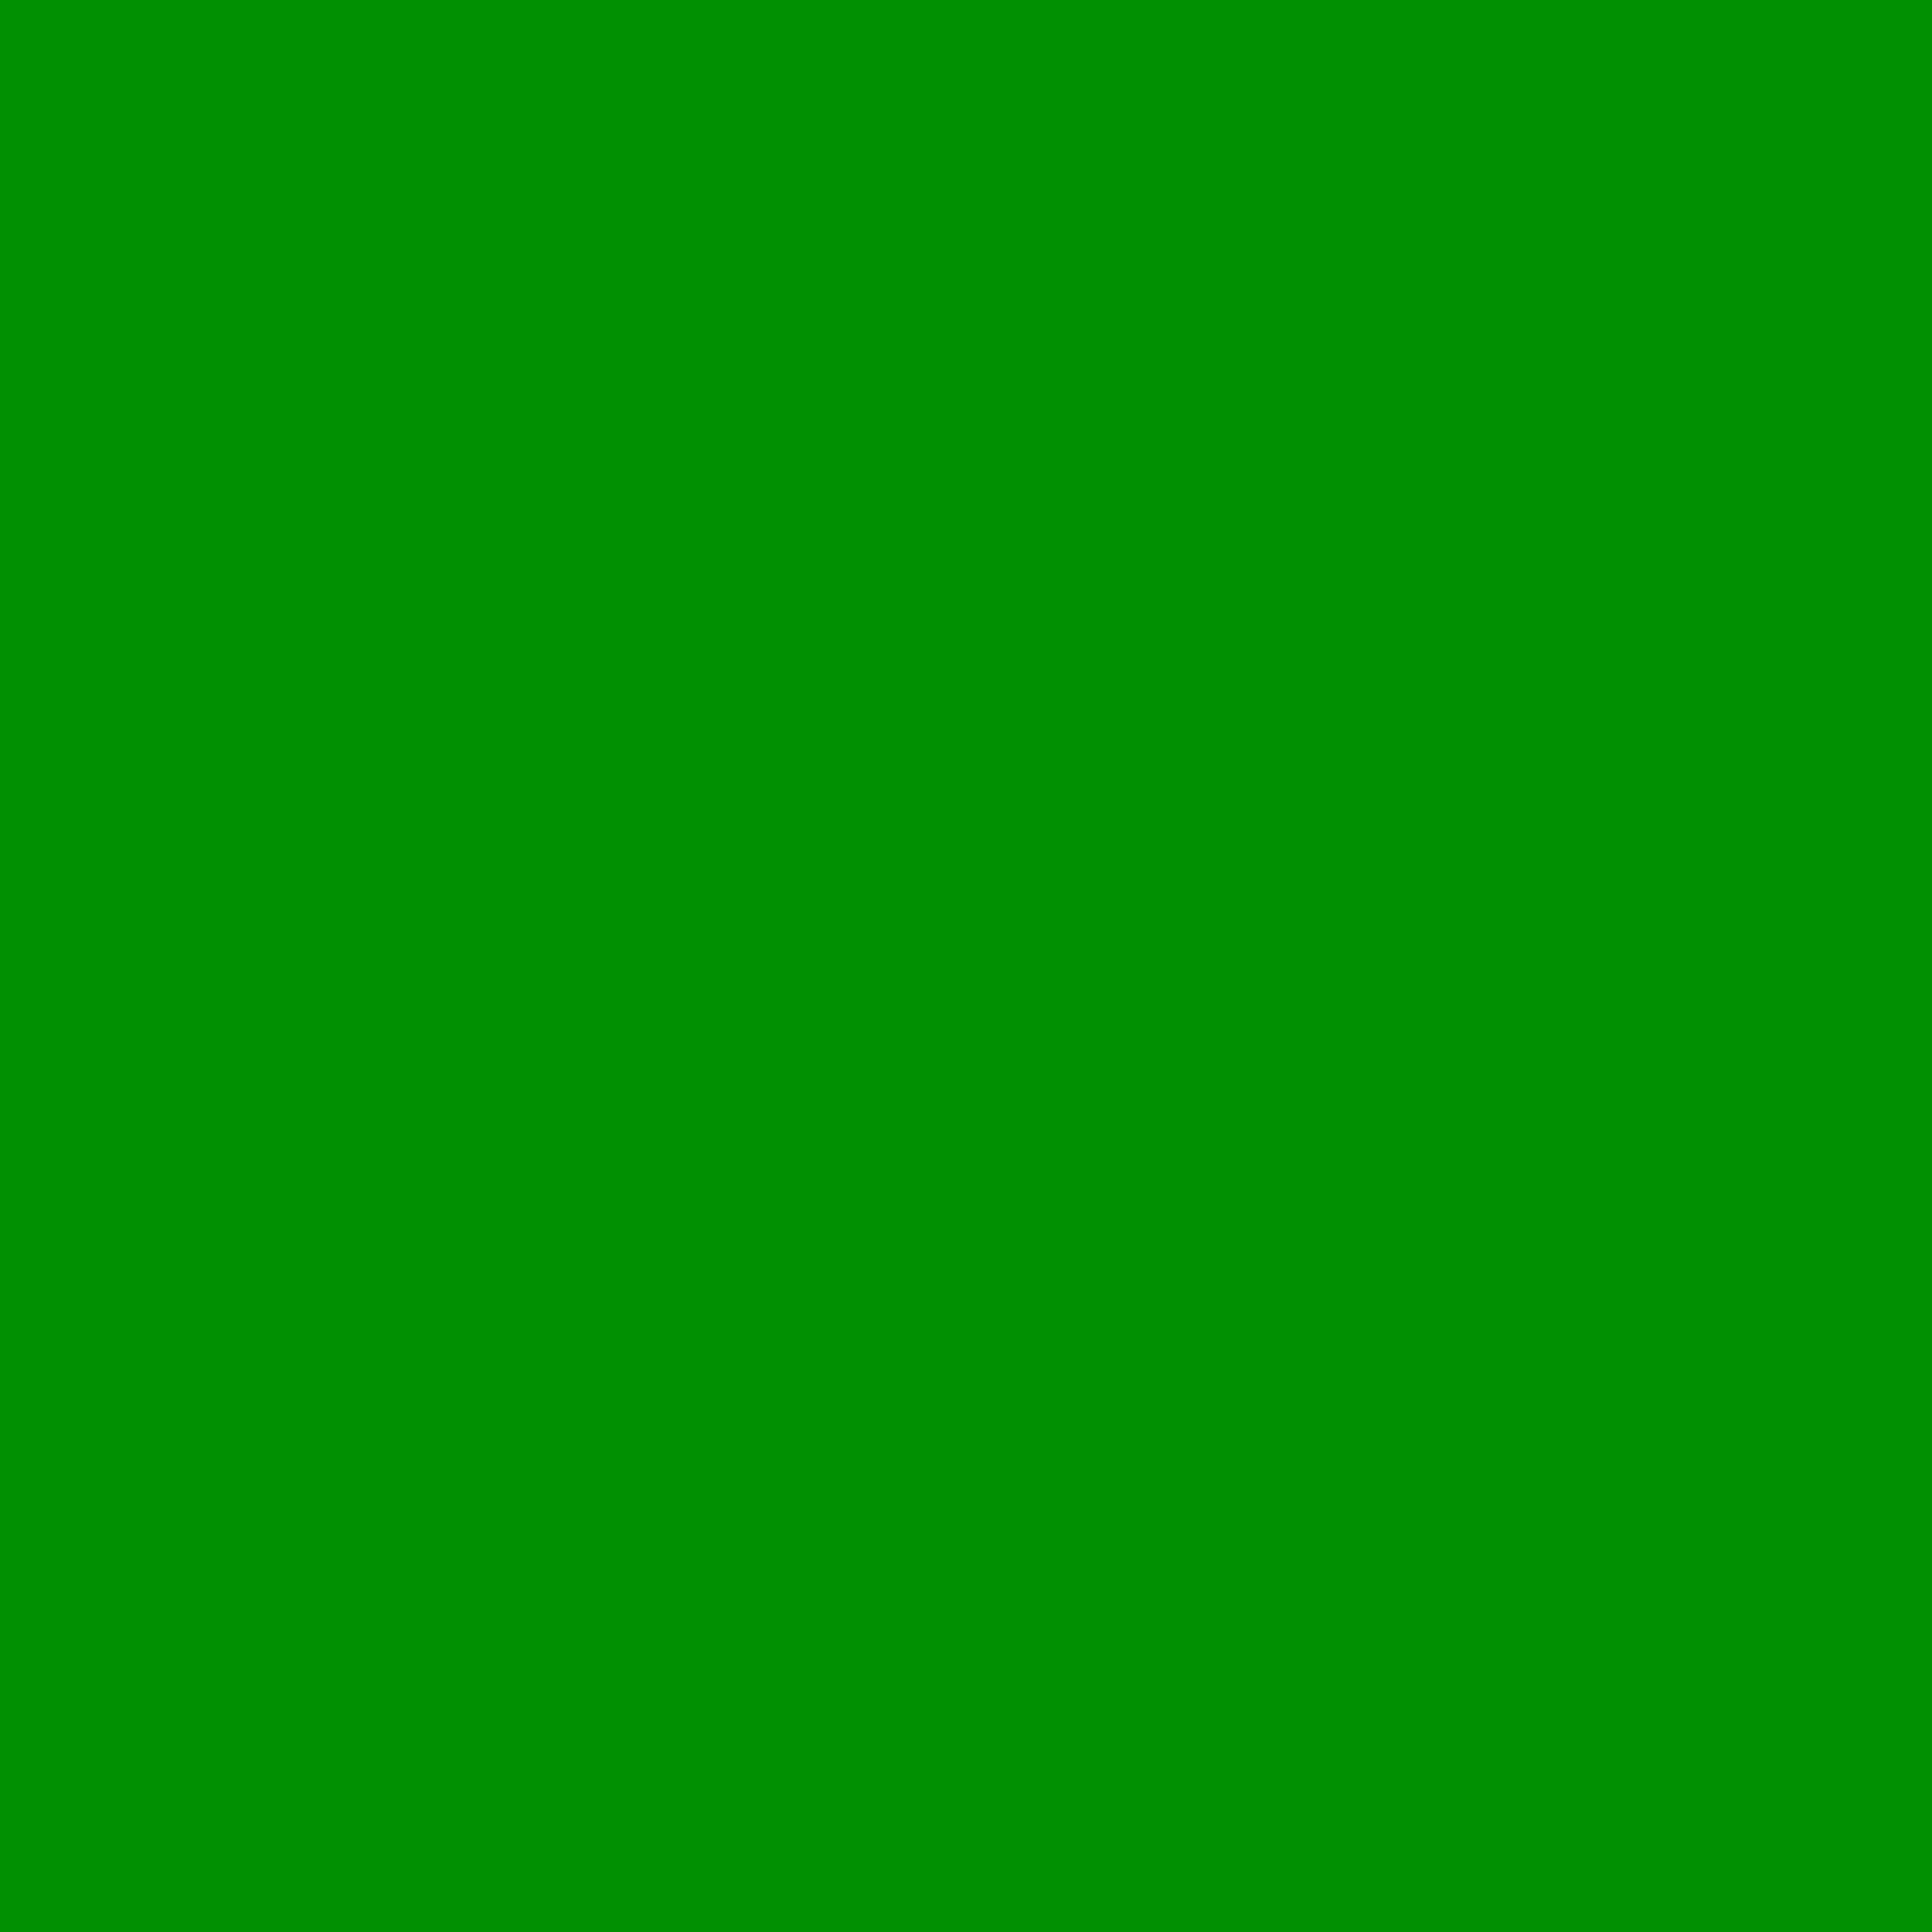 2732x2732 Islamic Green Solid Color Background